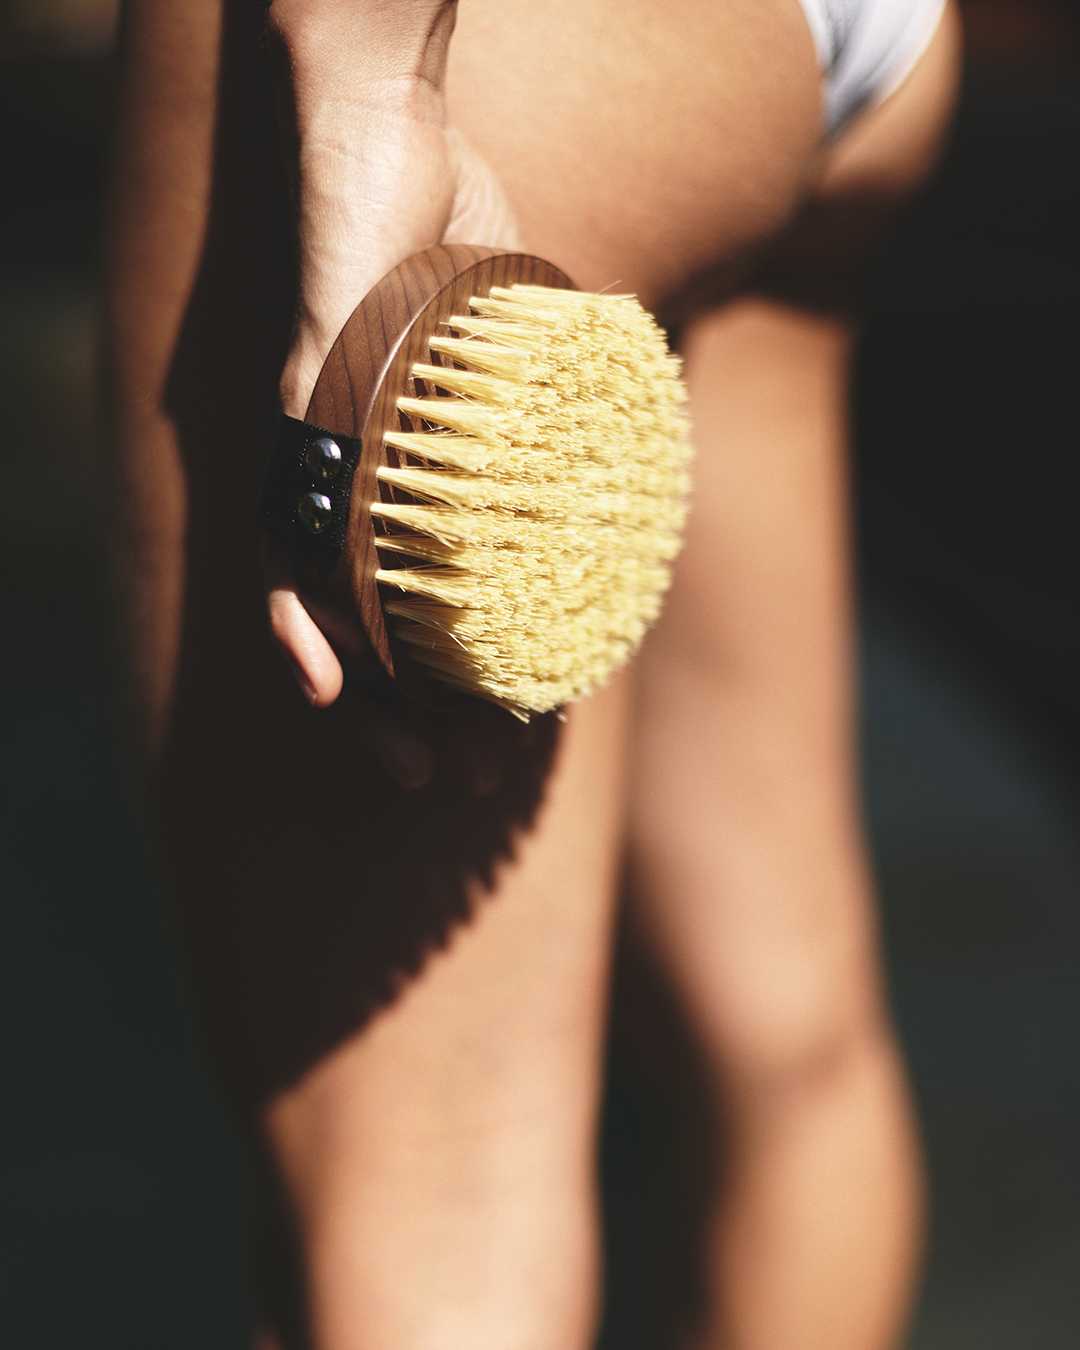 The history of the body brush